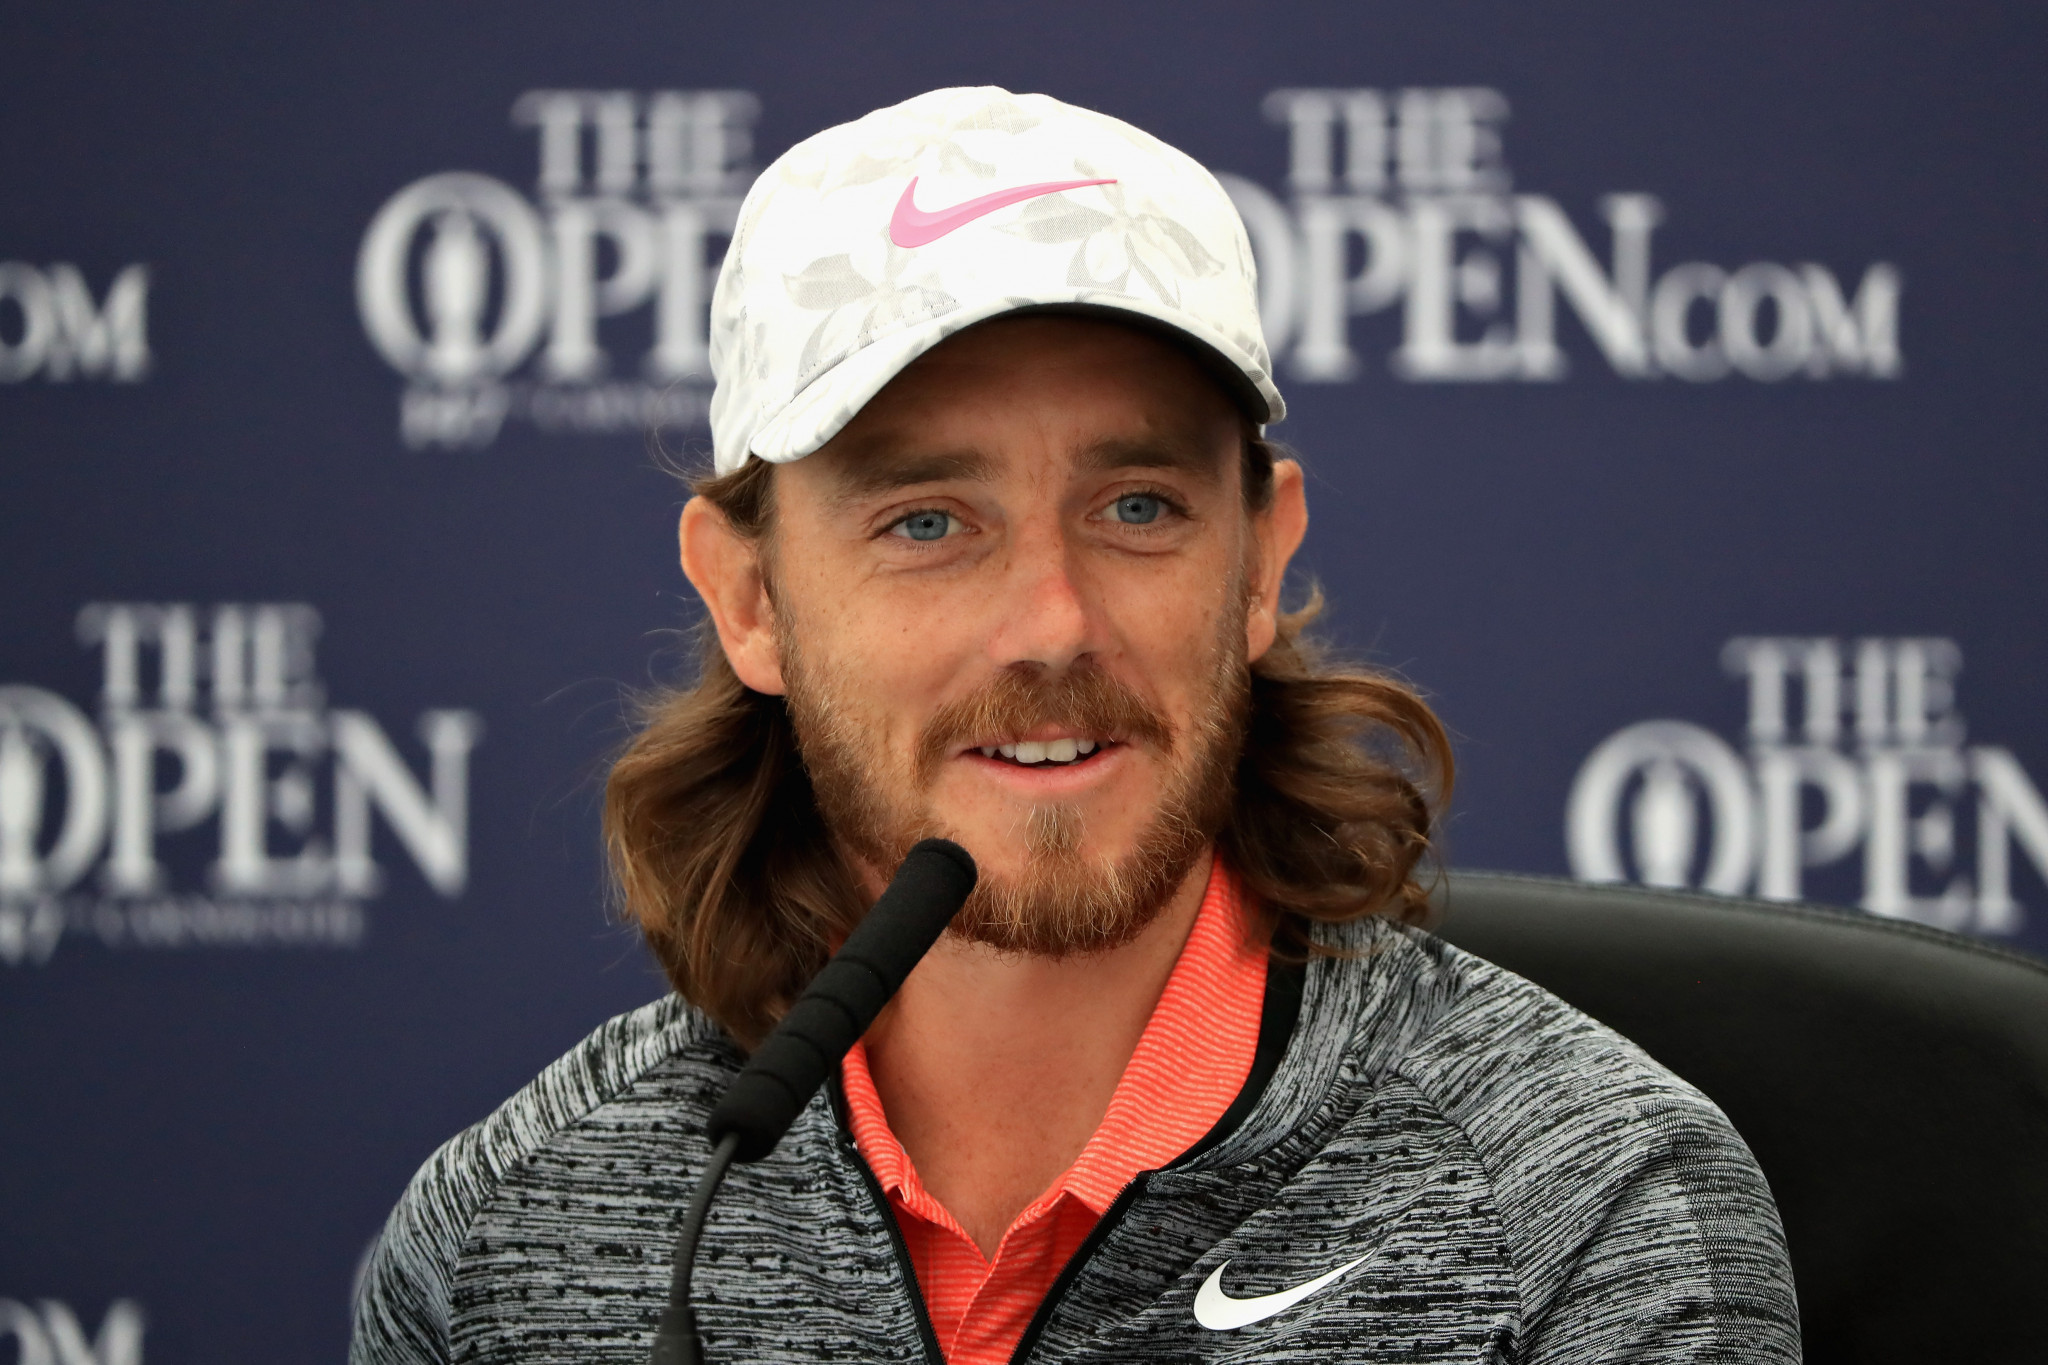 Tommy Fleetwood looking to end US dominance at 147th Open Championship